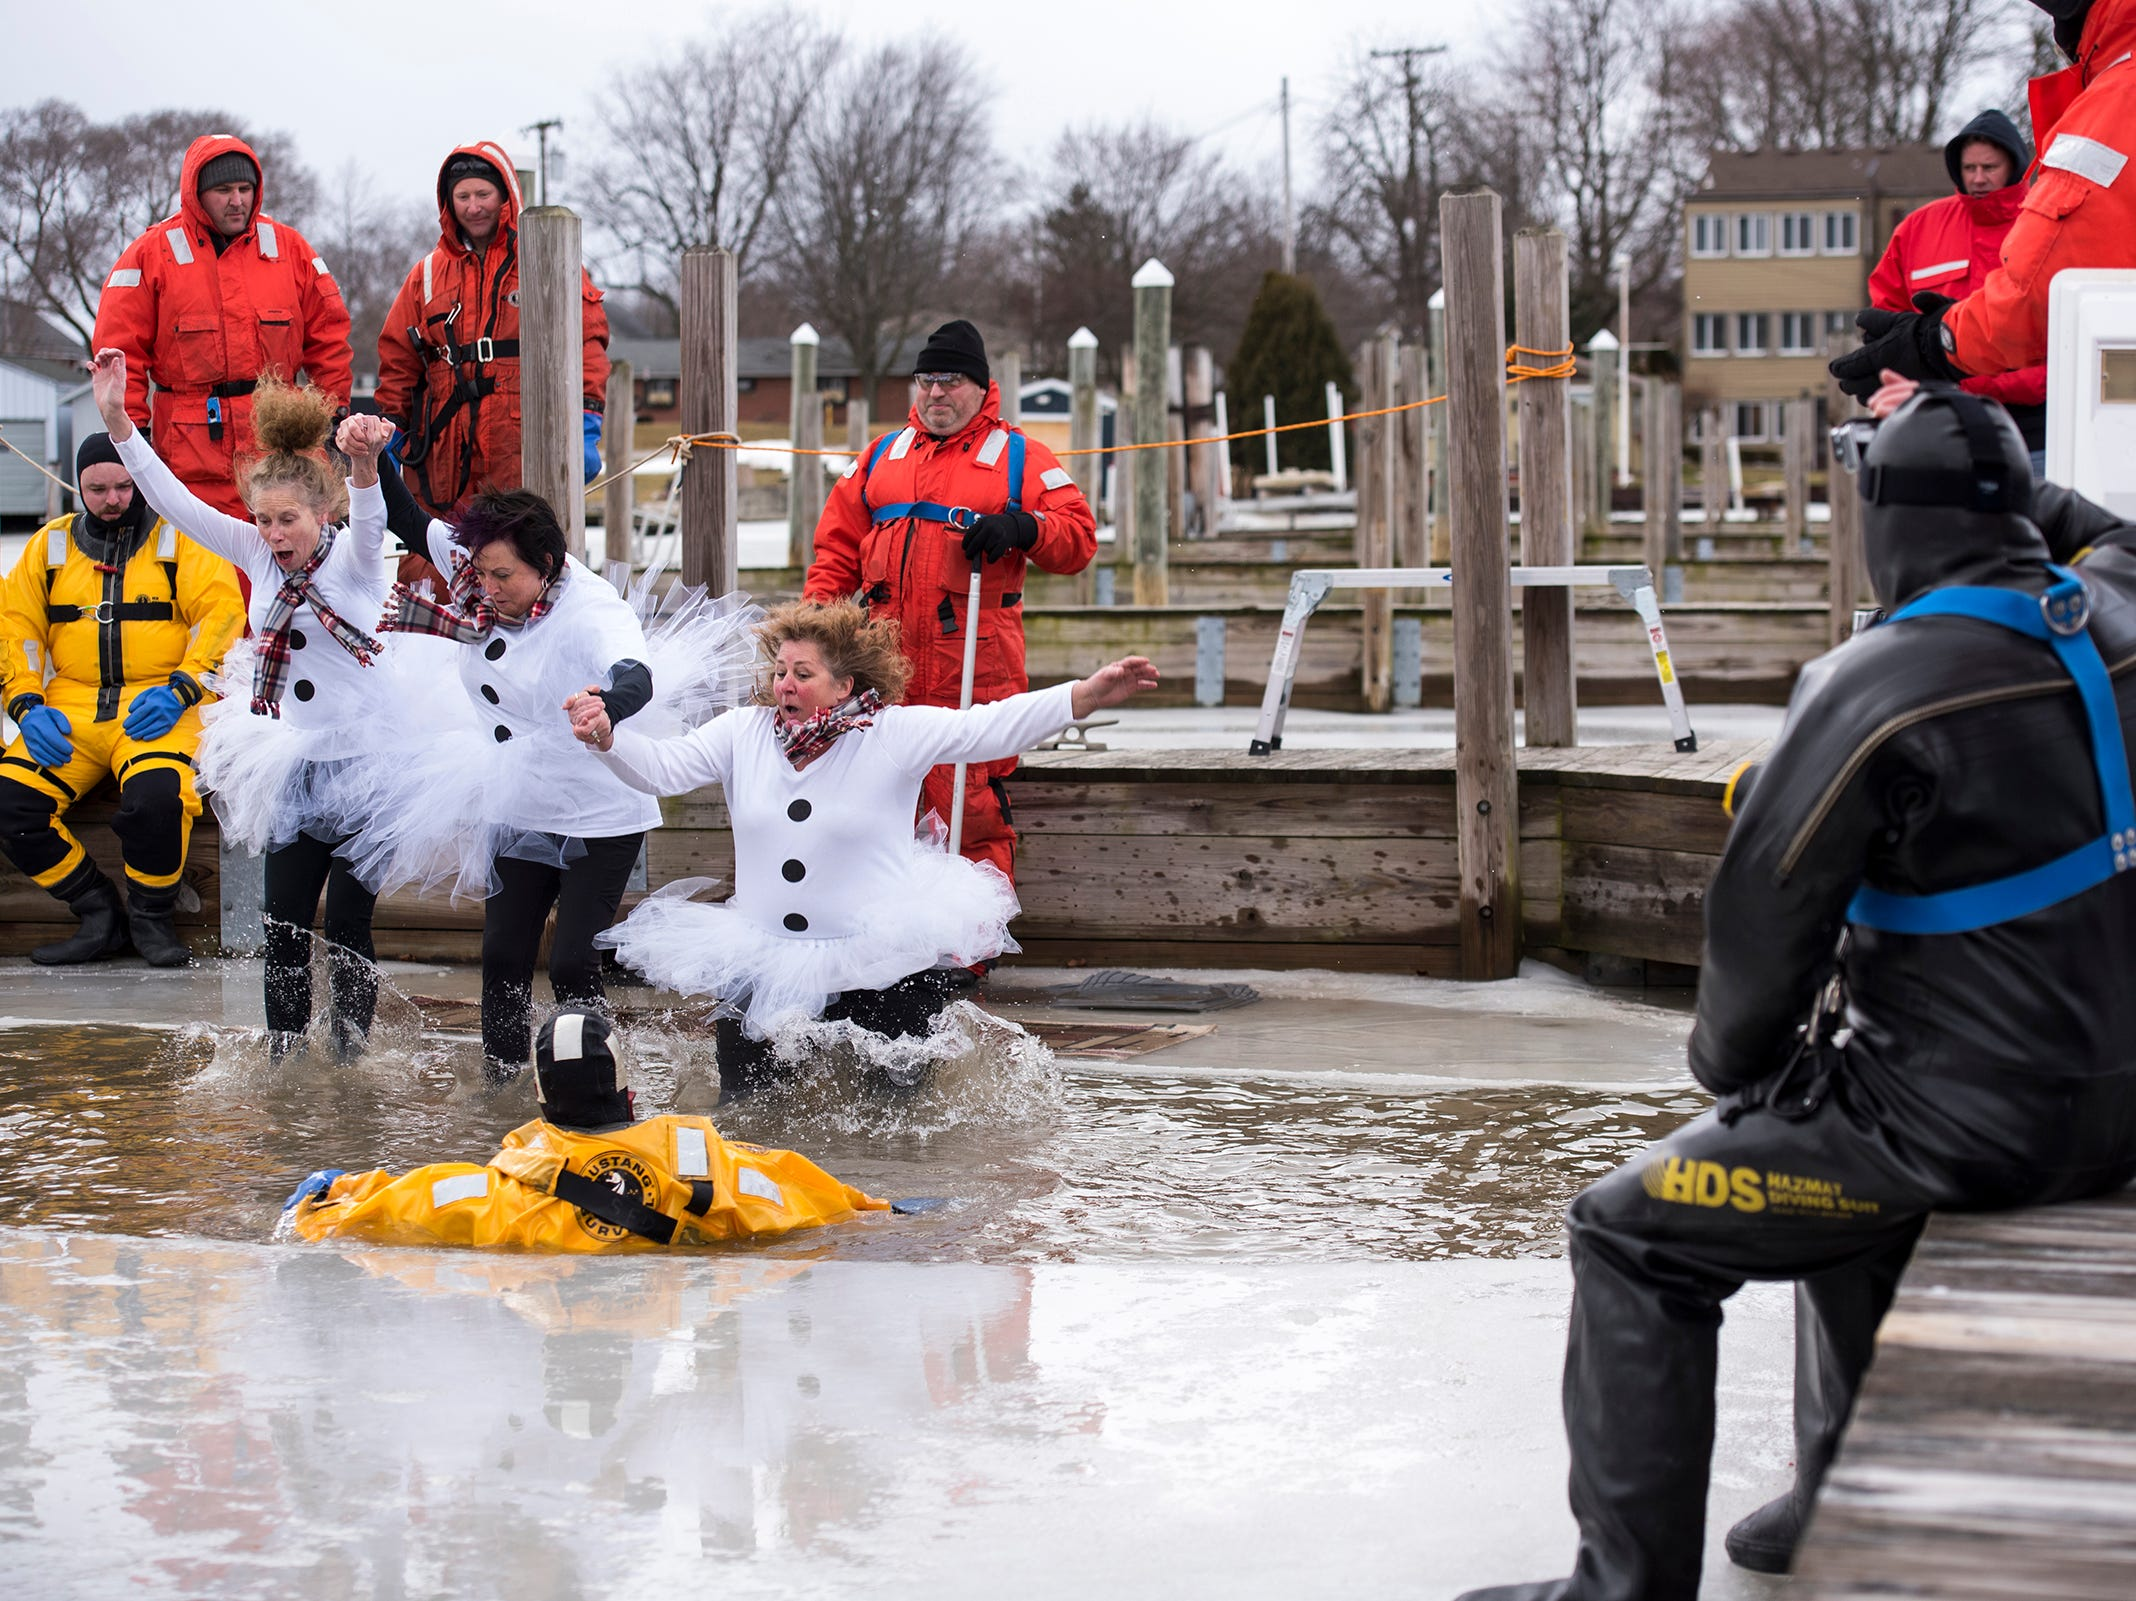 Participants react to the frigid water as they plunge through a hole cut in the ice in the St. Clair Boat Harbor Sunday, Feb. 24, 2019 for the annual St. Clair Polar Plunge.